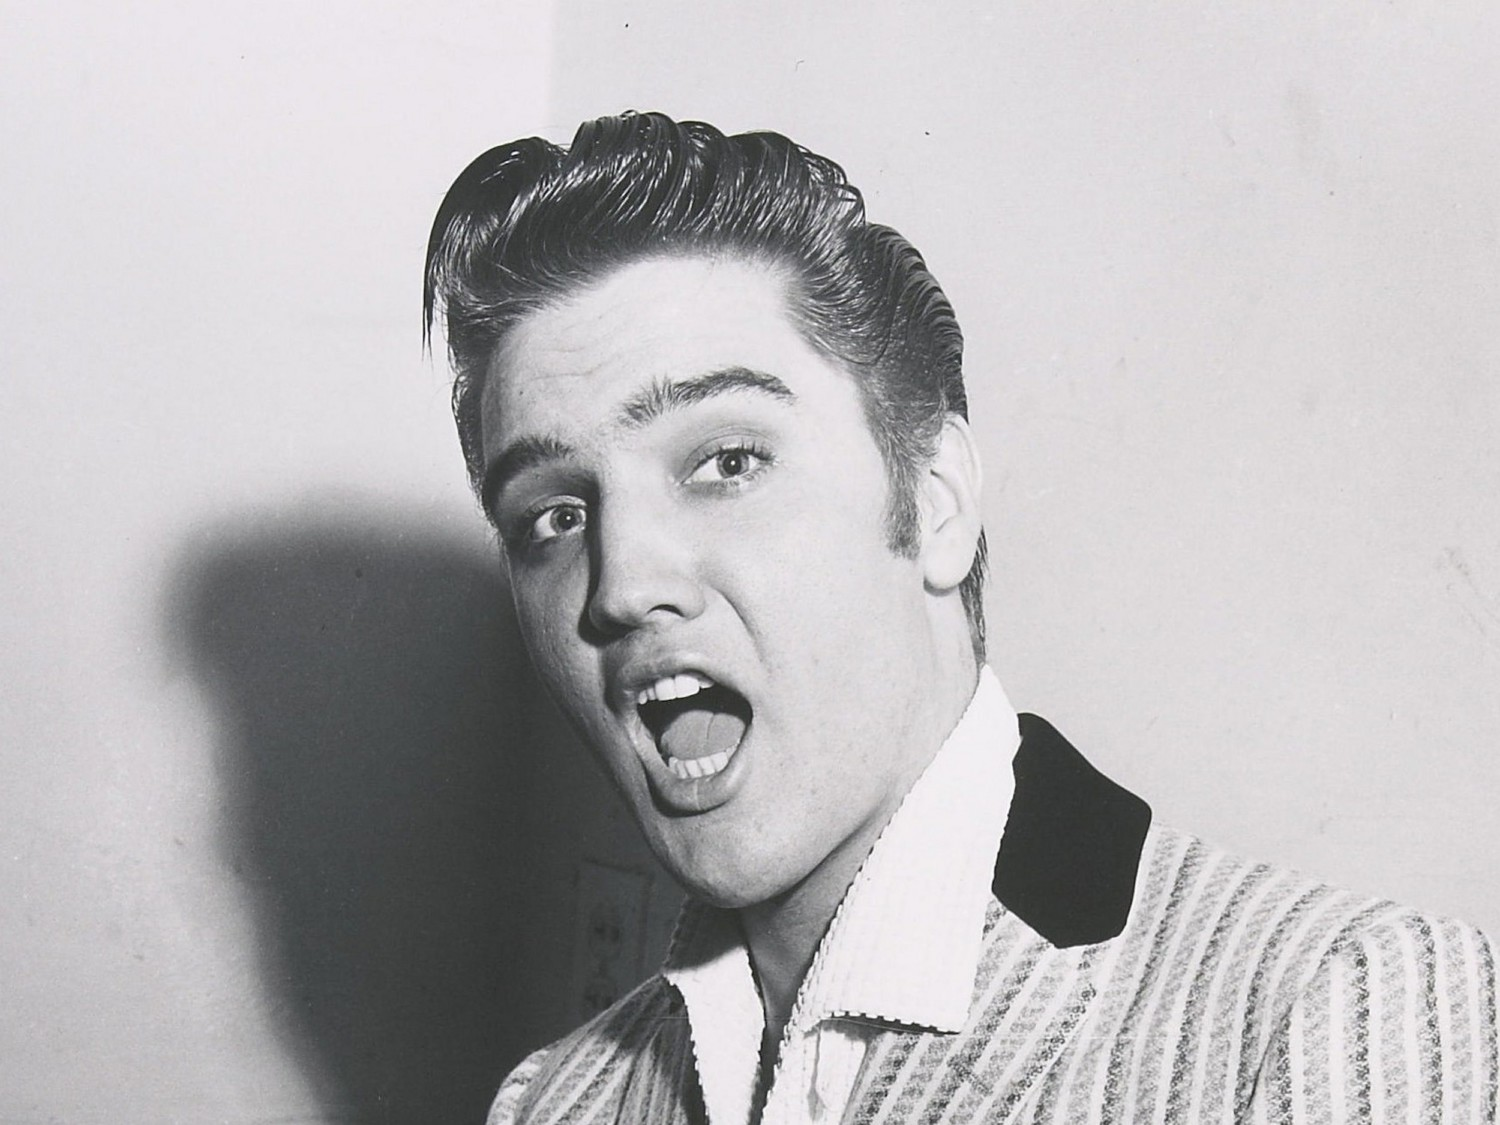 Elvis Presley Oakland Auditorium in California June 3, 1956